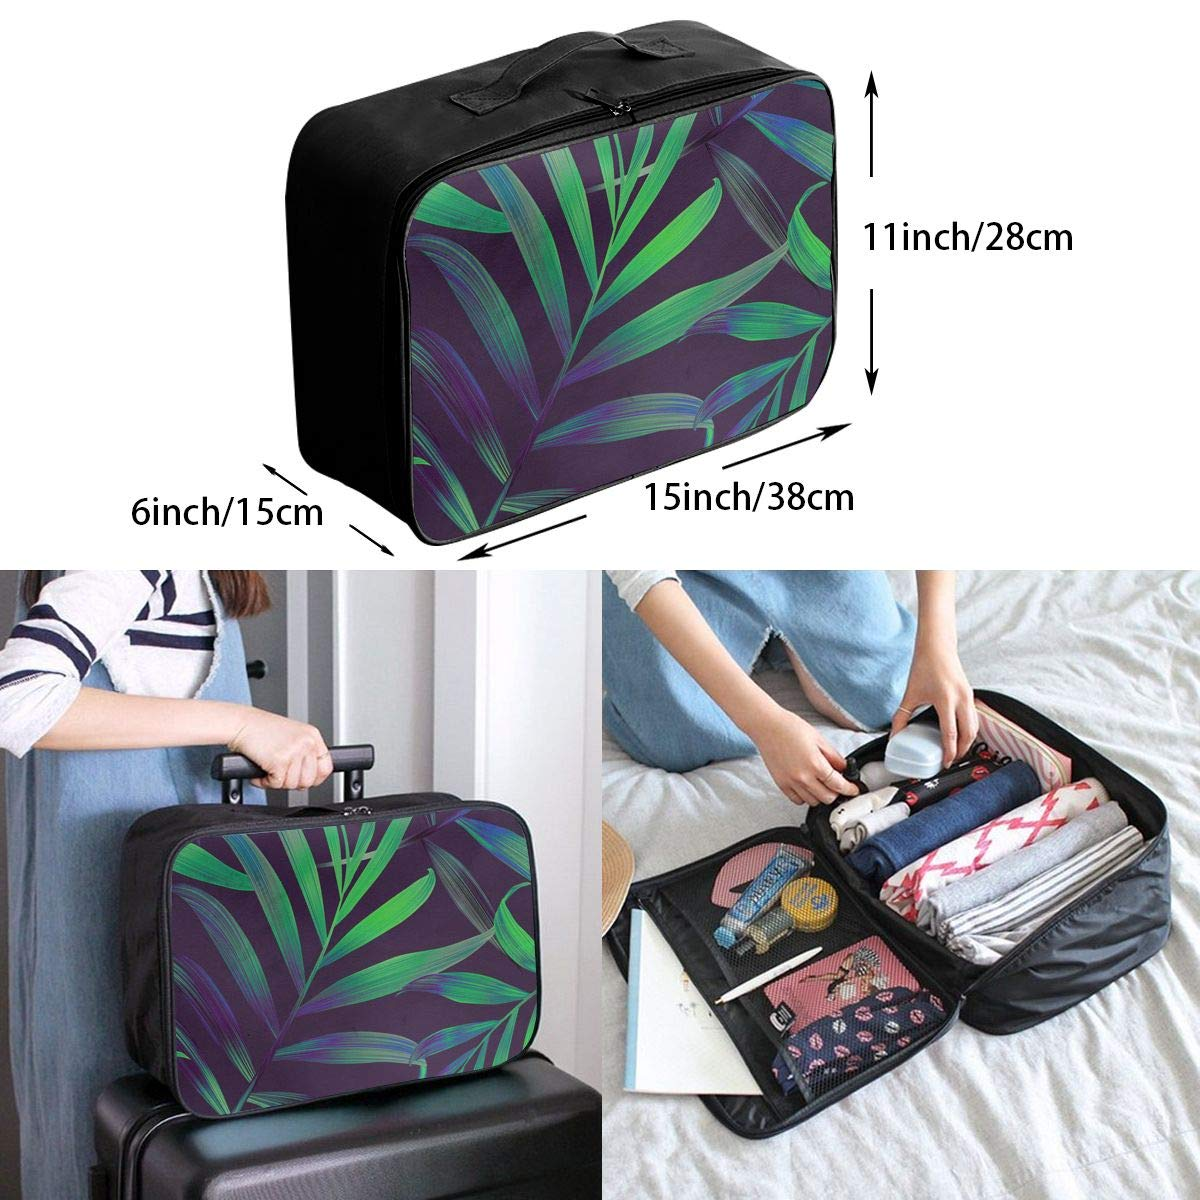 Travel Luggage Duffle Bag Lightweight Portable Handbag Leaf Nature Large Capacity Waterproof Foldable Storage Tote